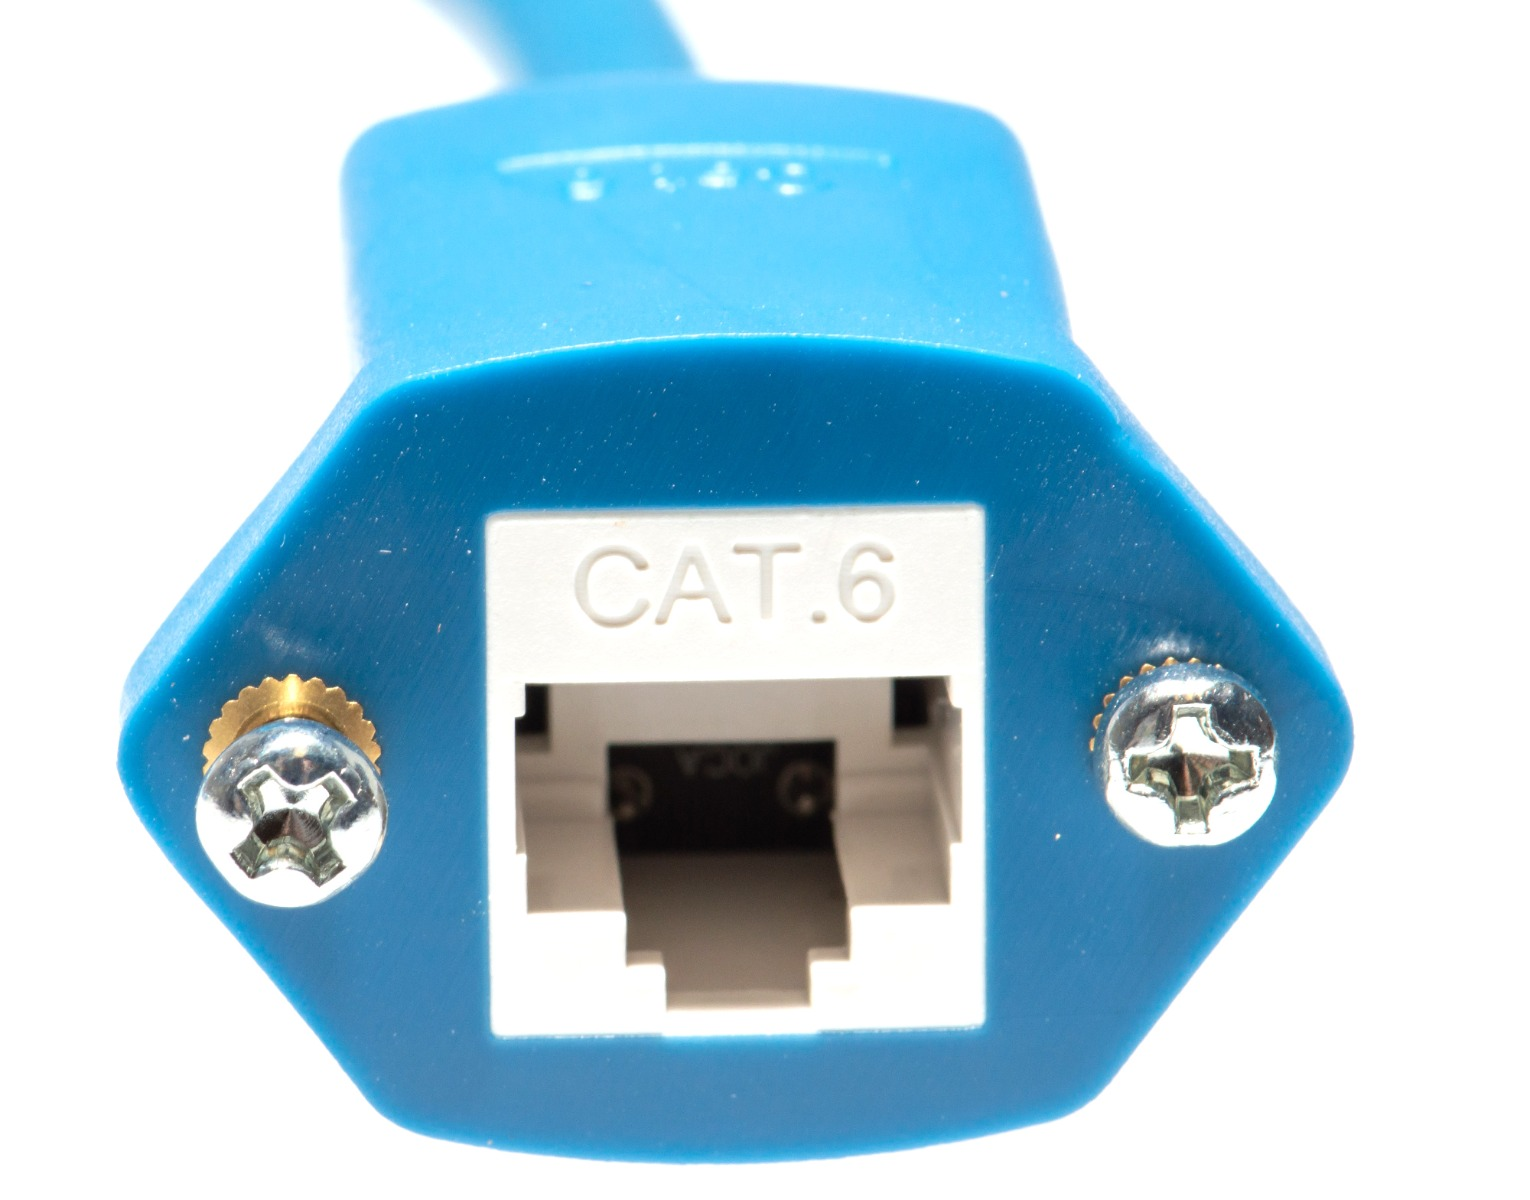 Cat6 Ethernet Network Patch Cables Cat5e Rj45 Cable Shielded 26 Awg Pvc Jacket Gray 150 Ft Panel Mount Standard Boot Blue